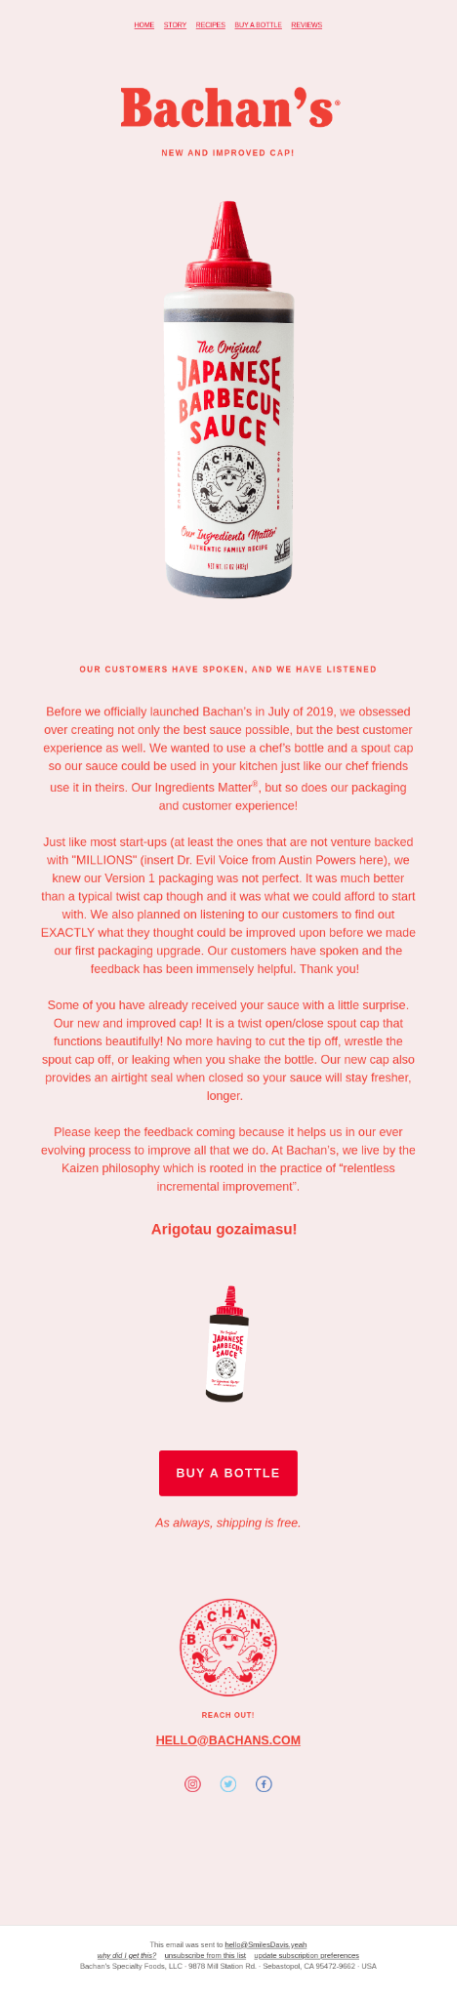 Softer Background Colors email template